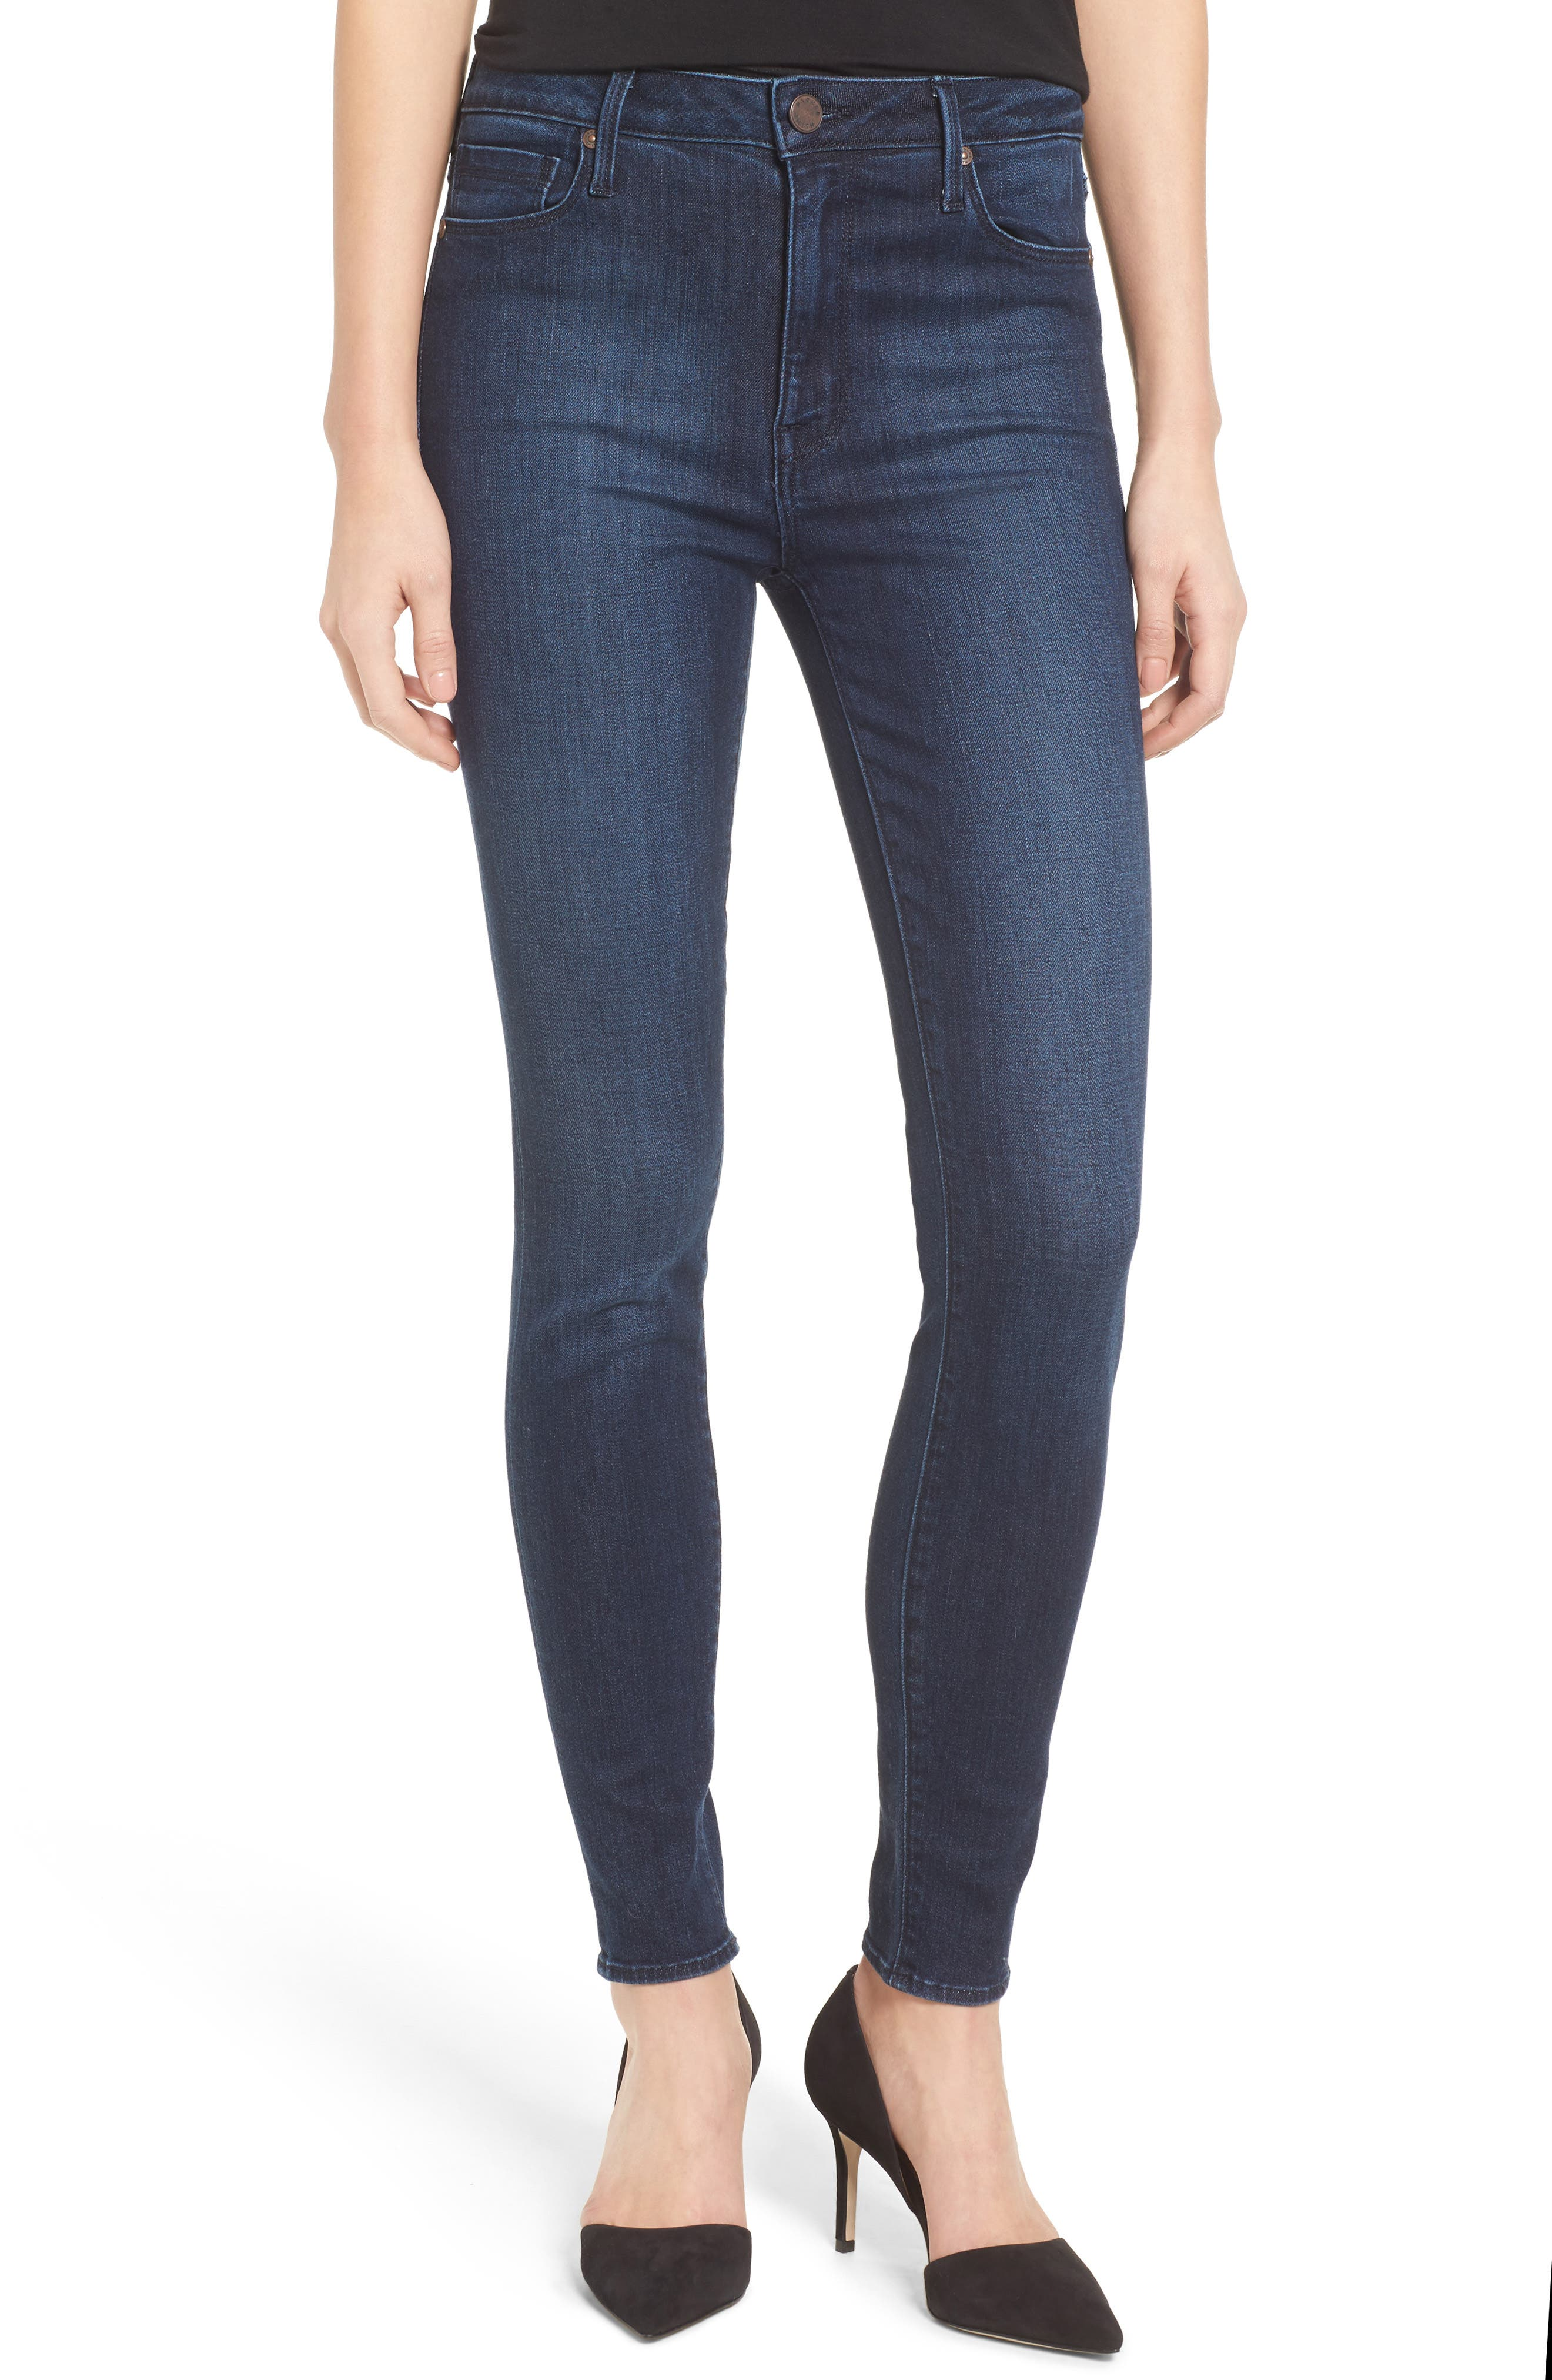 Main Image - PARKER SMITH Bombshell High Waist Stretch Skinny Jeans (Baltic)